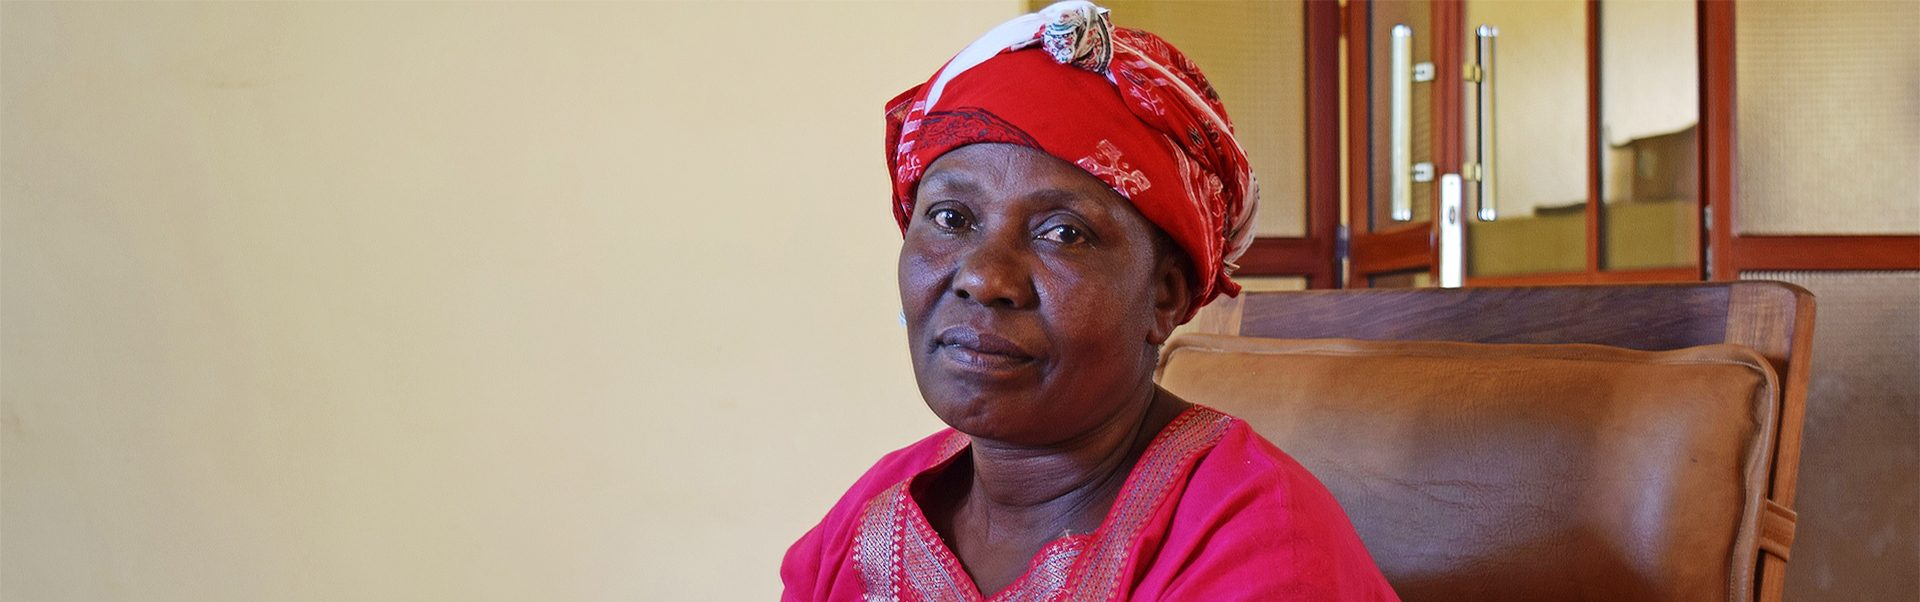 Eva is from Tanzania and is suffering from glaucoma